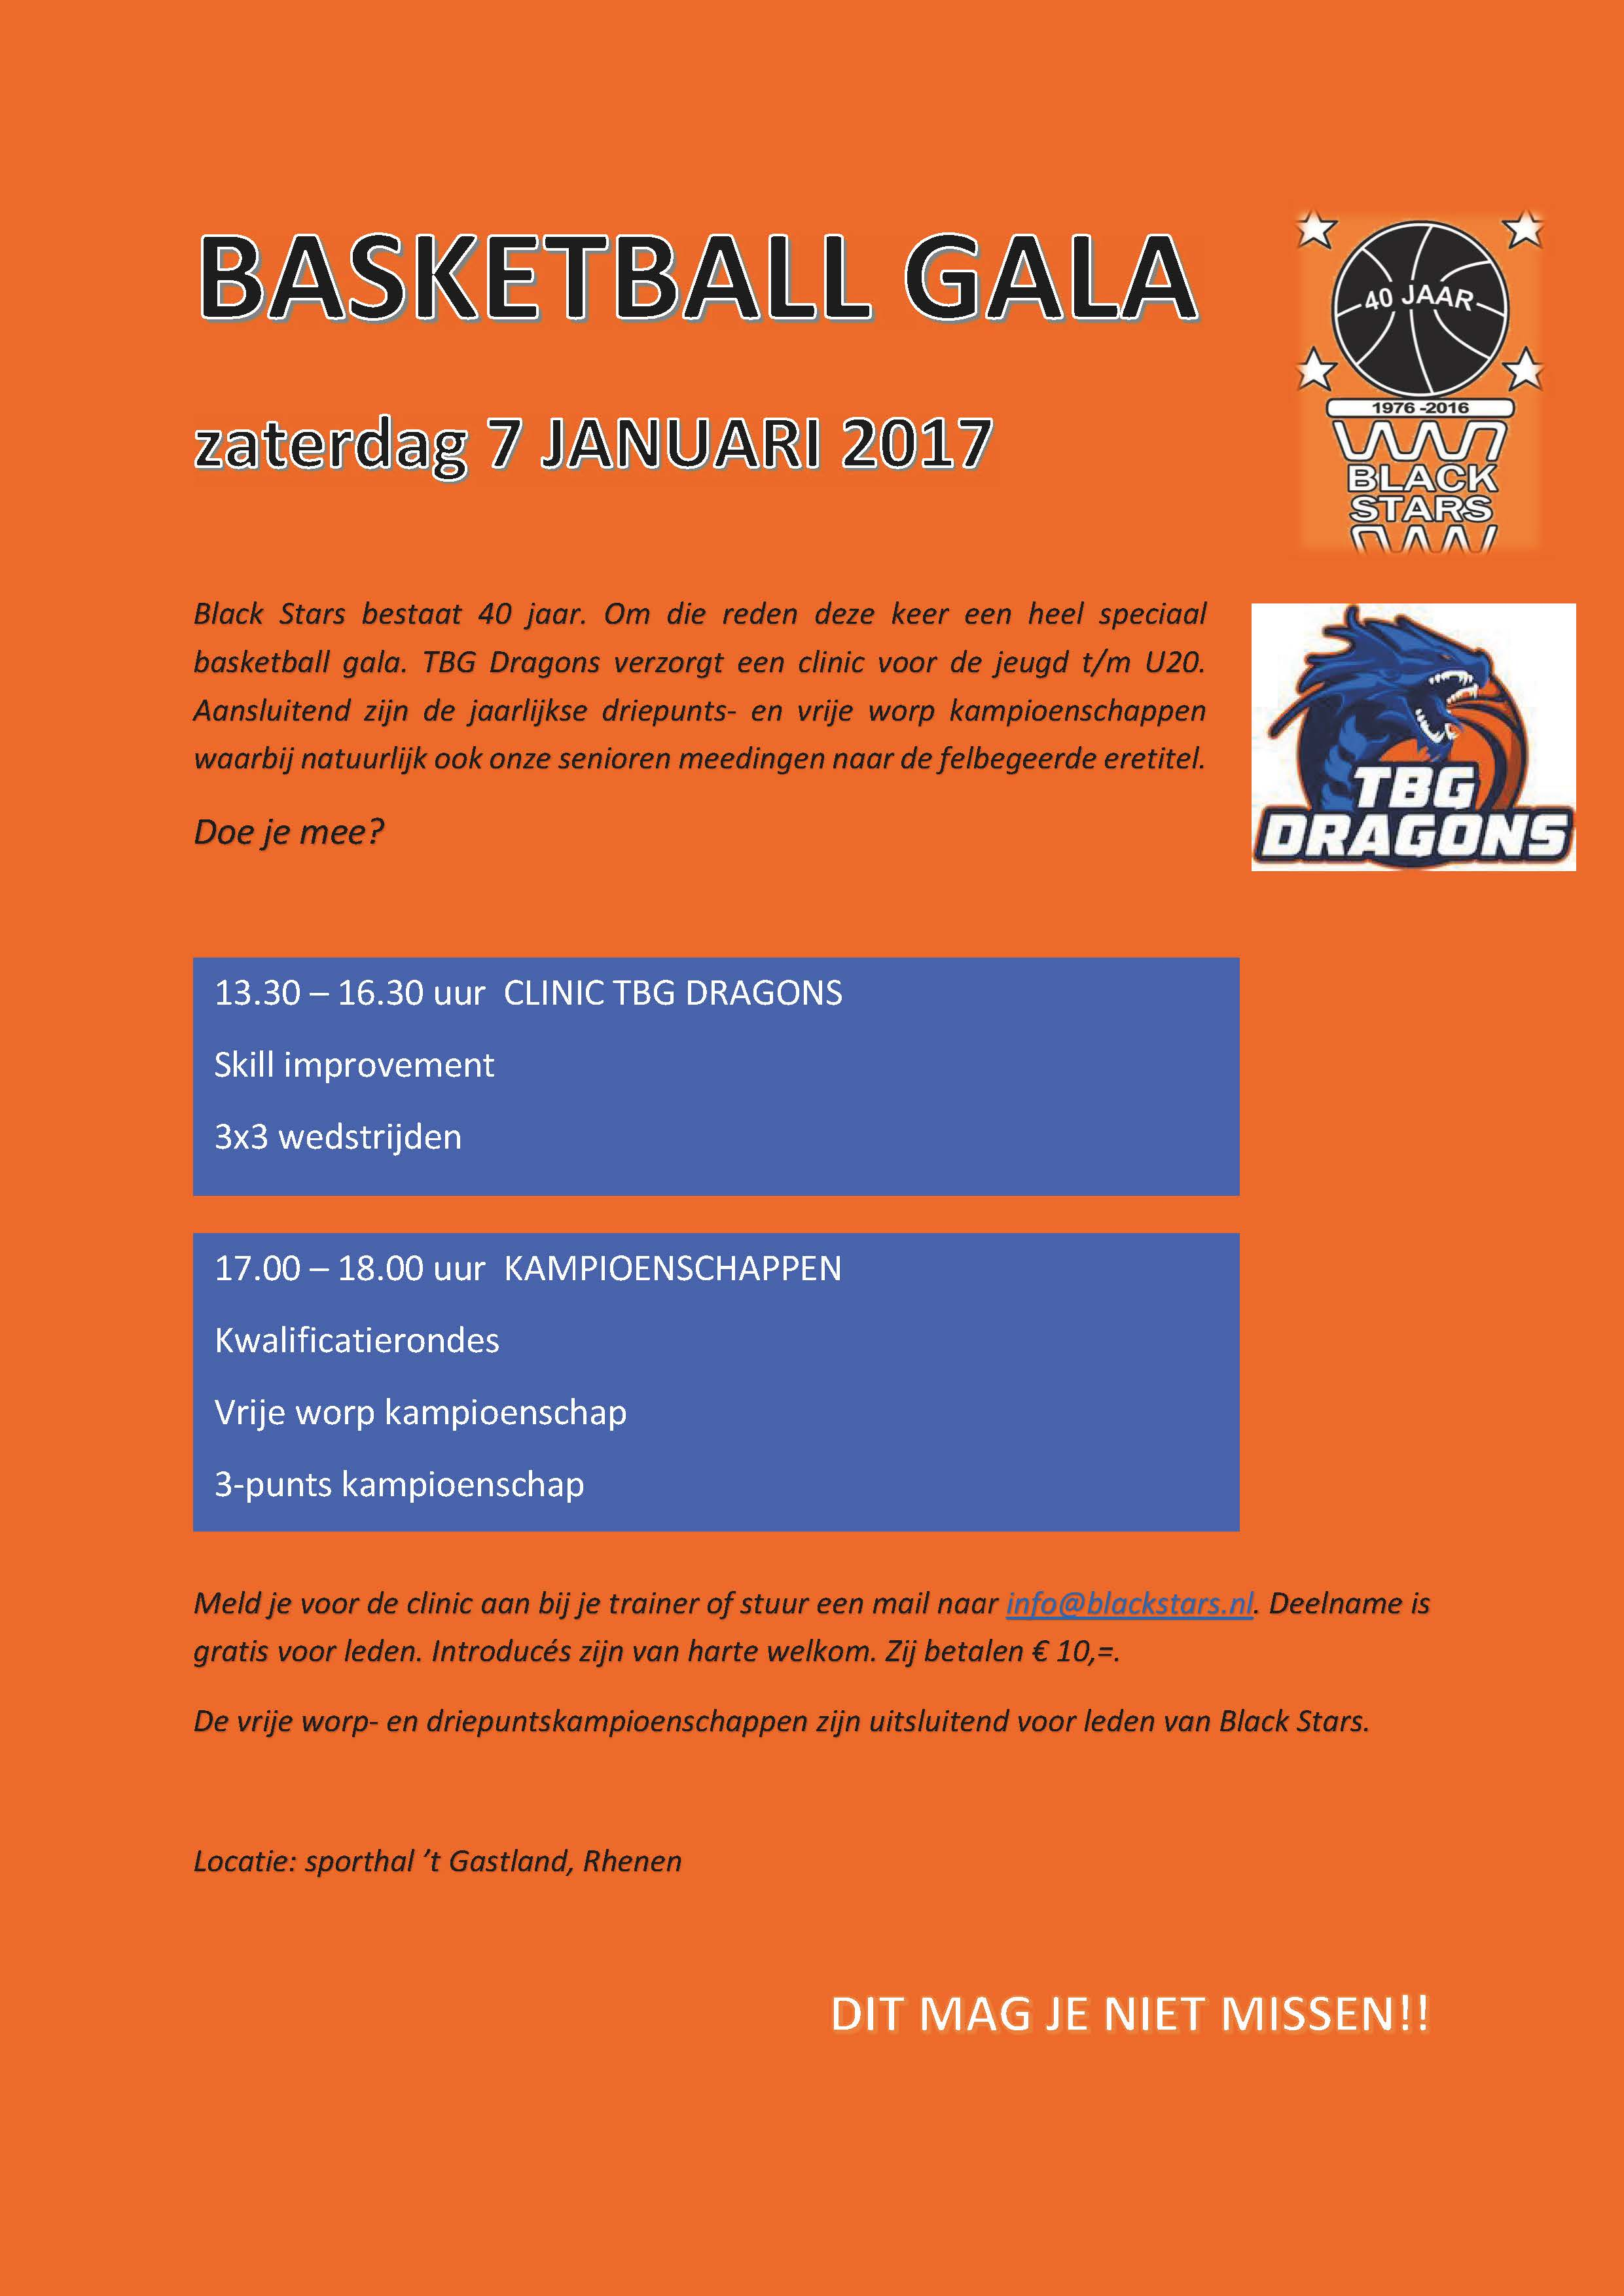 Basketball gala 7 januari 2017 003